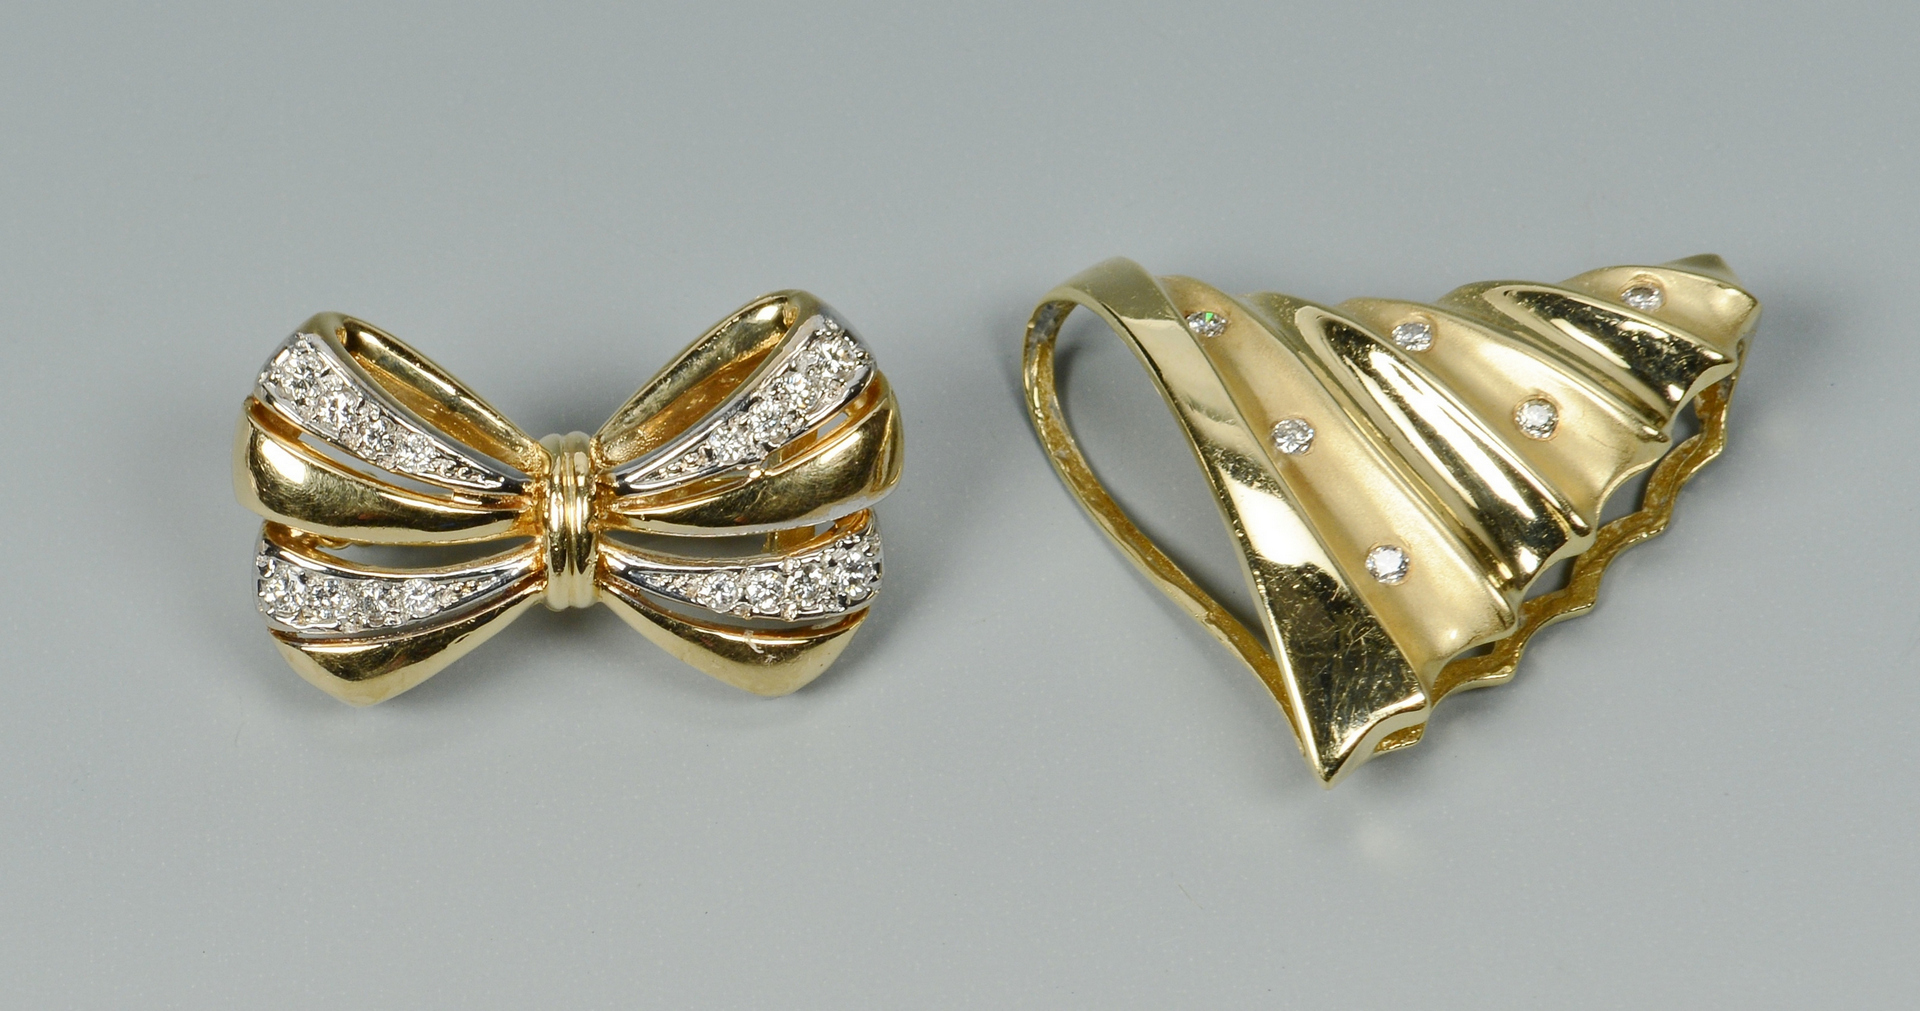 Lot 3088216: Two 14k and Diamond Necklace Enhancers